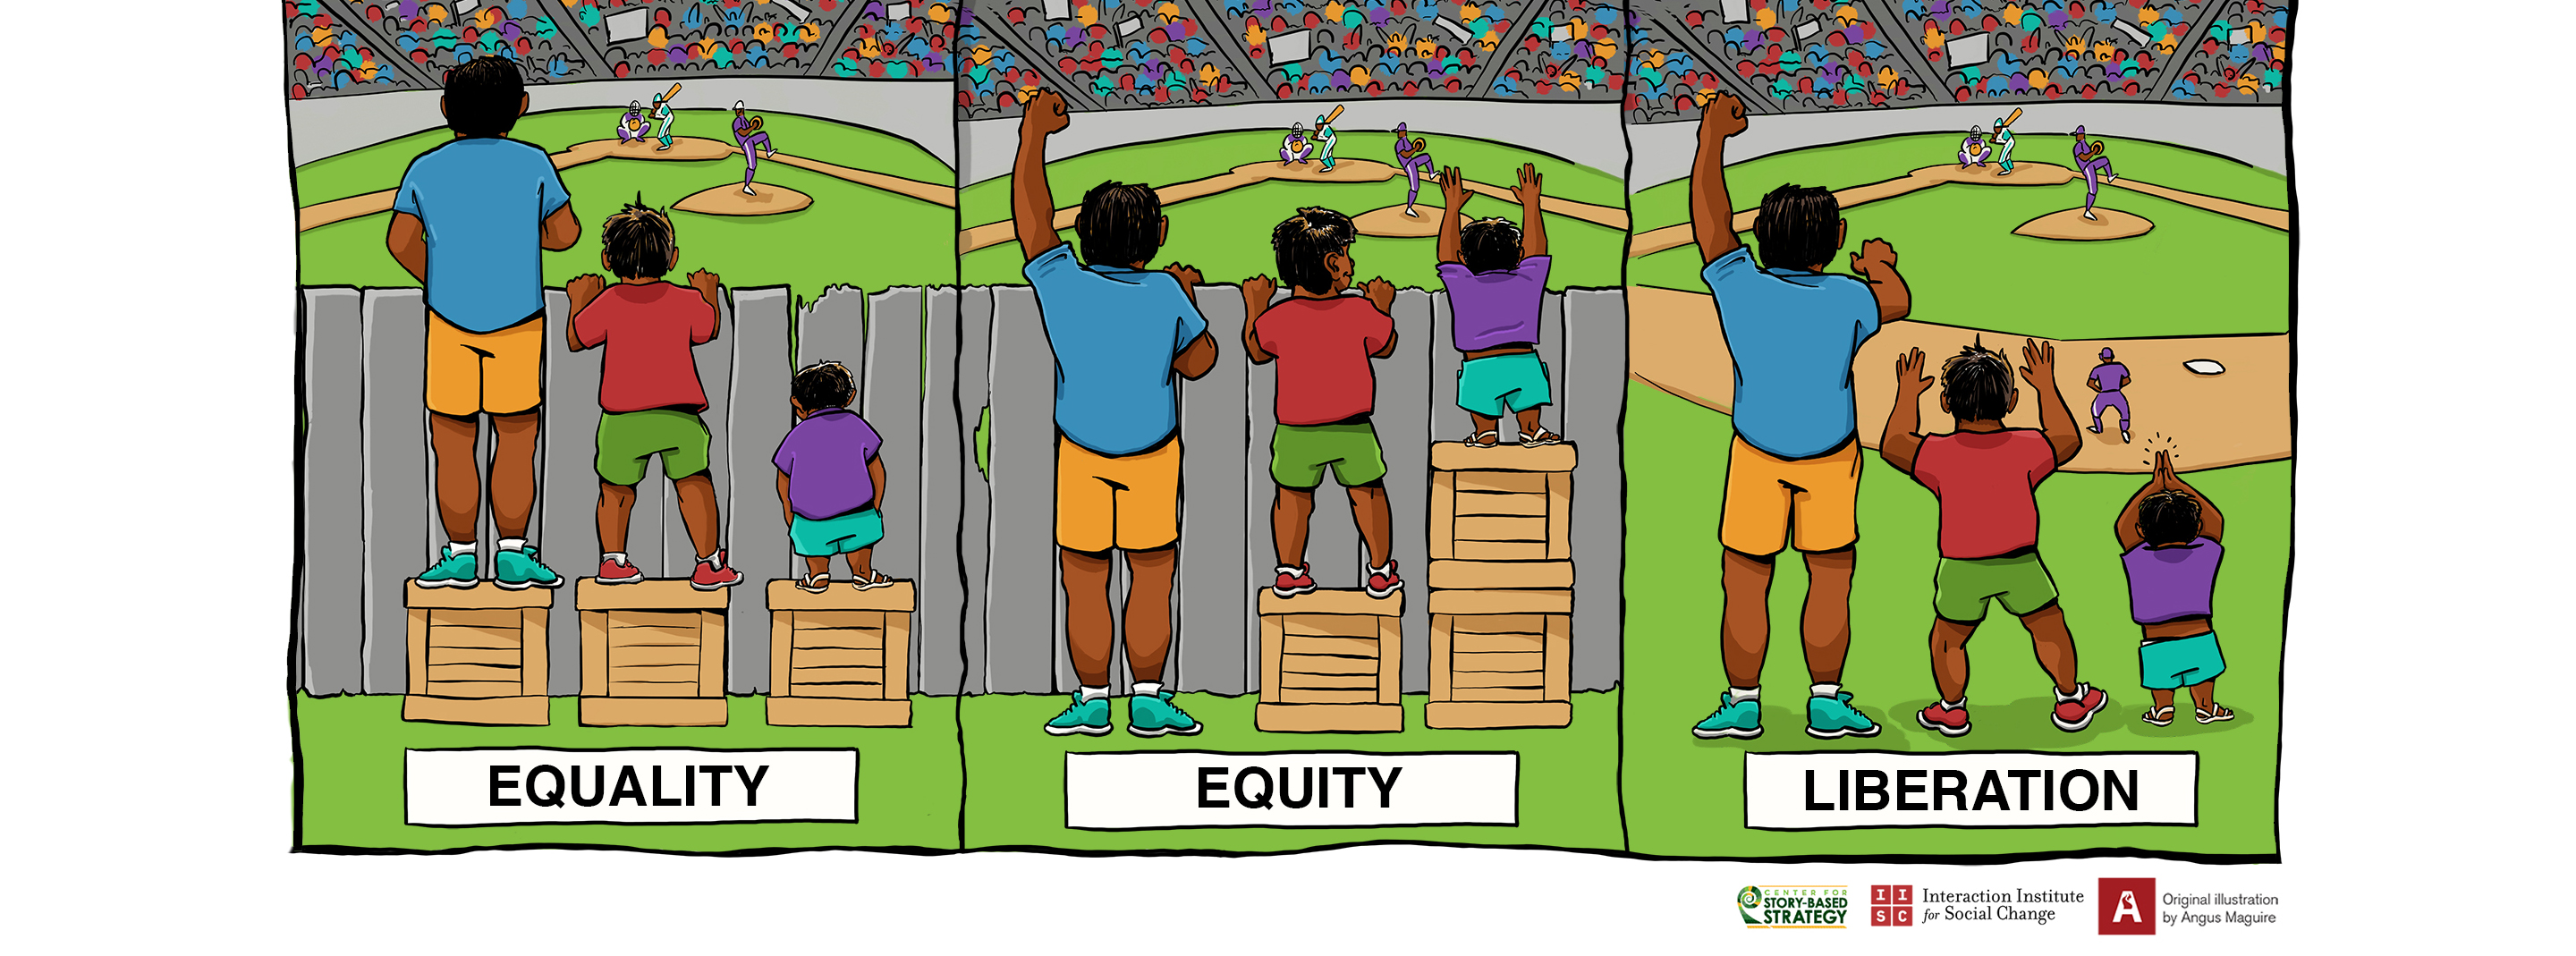 A cartoon representation of equality and equity